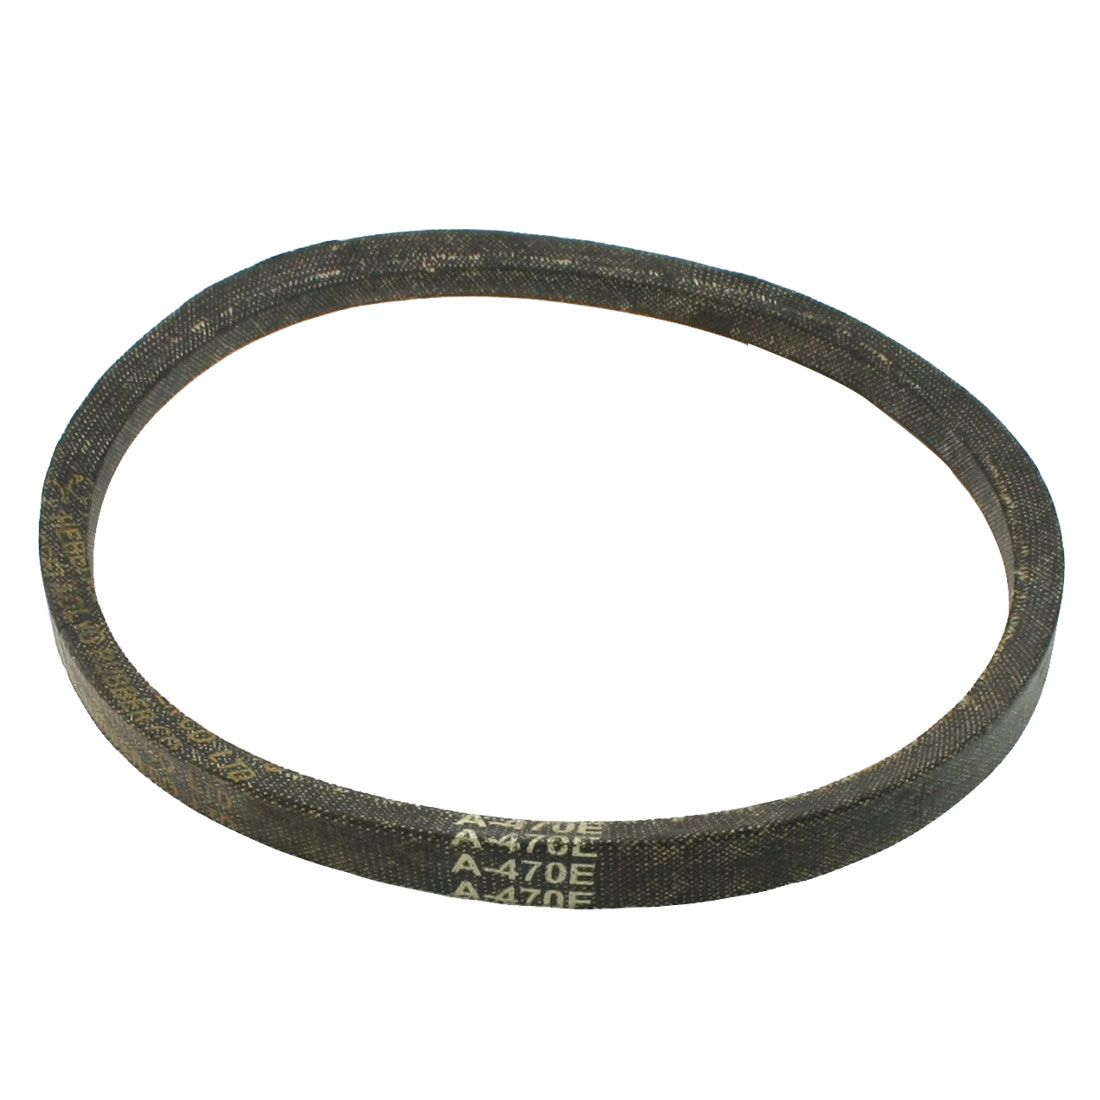 "Washing Machine Motor V Belt 33/64"" Outer Width 47cm 18 1/2"" Inner Girth"